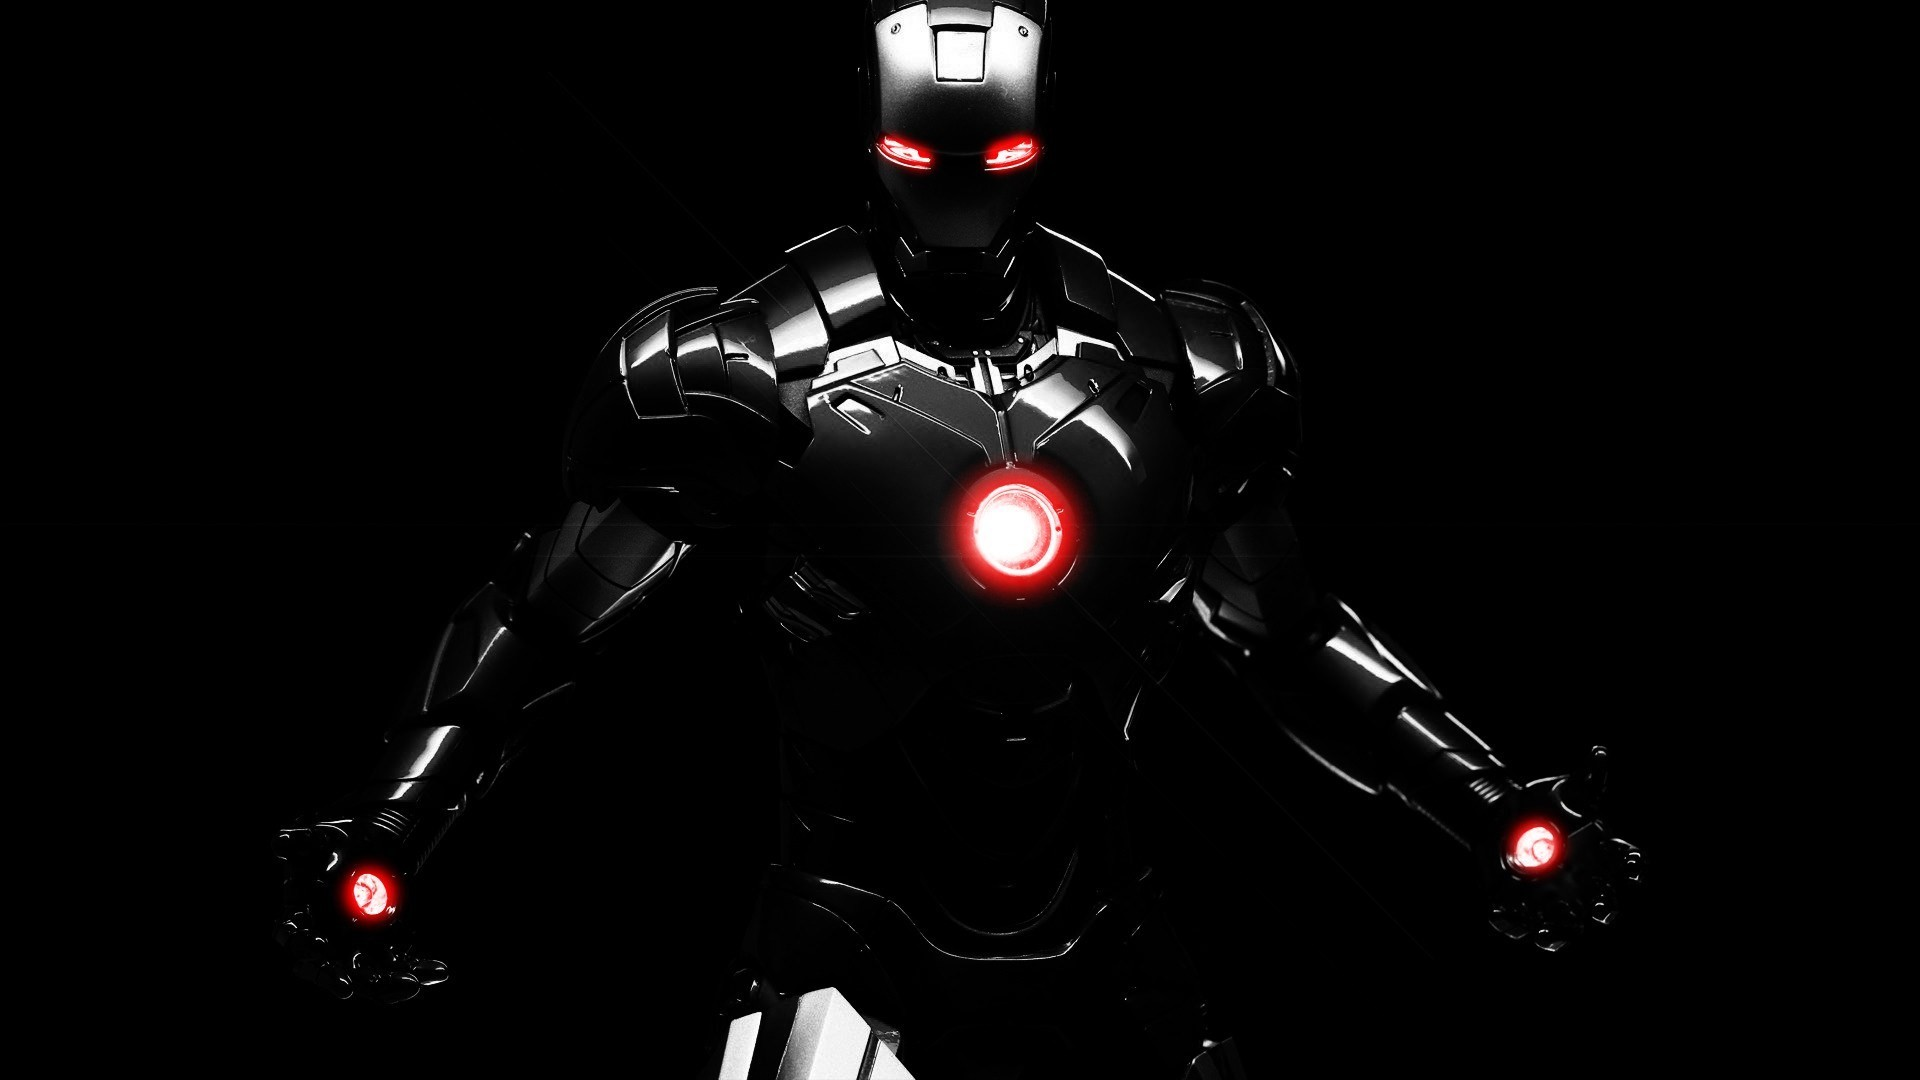 1920x1080 1920 x 1080 px high resolution wallpapers widescreen iron man by Clarissa  Nail for - TWD